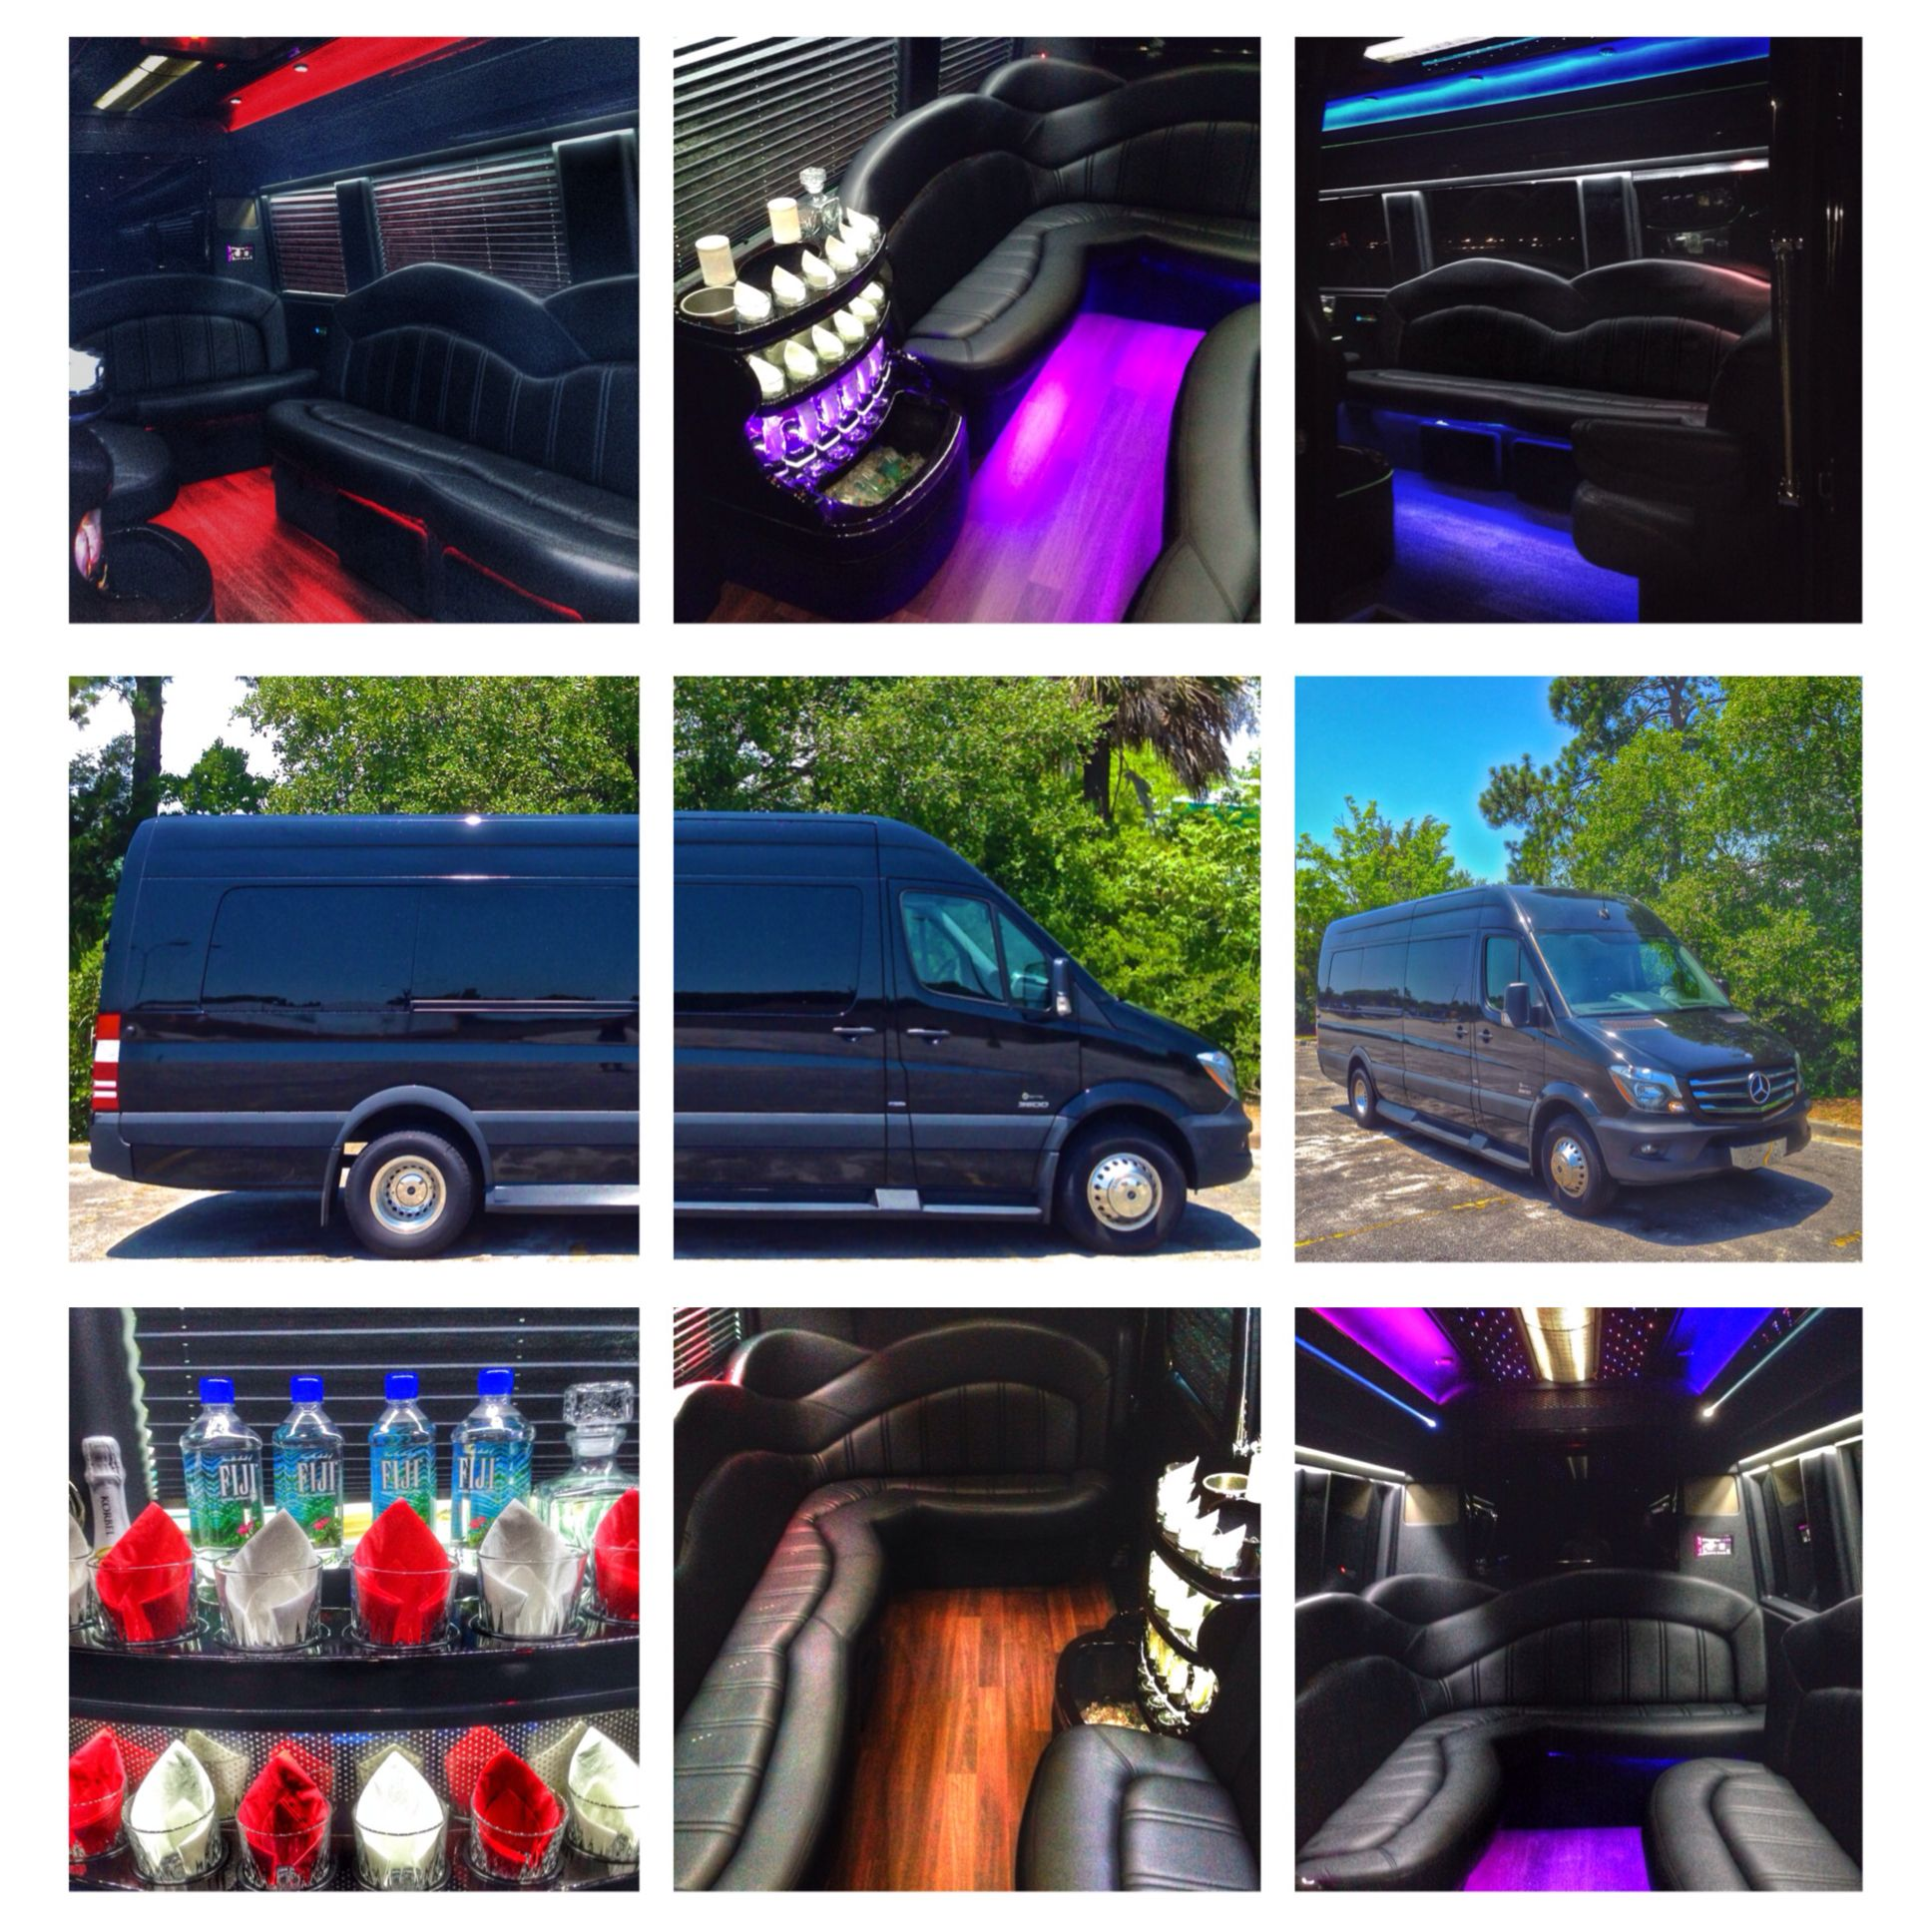 Carolina's Executive Limo Line offers the 2014 Mercedes Executive Limo Bus. The most high-end luxury limo bus in the Charleston area!